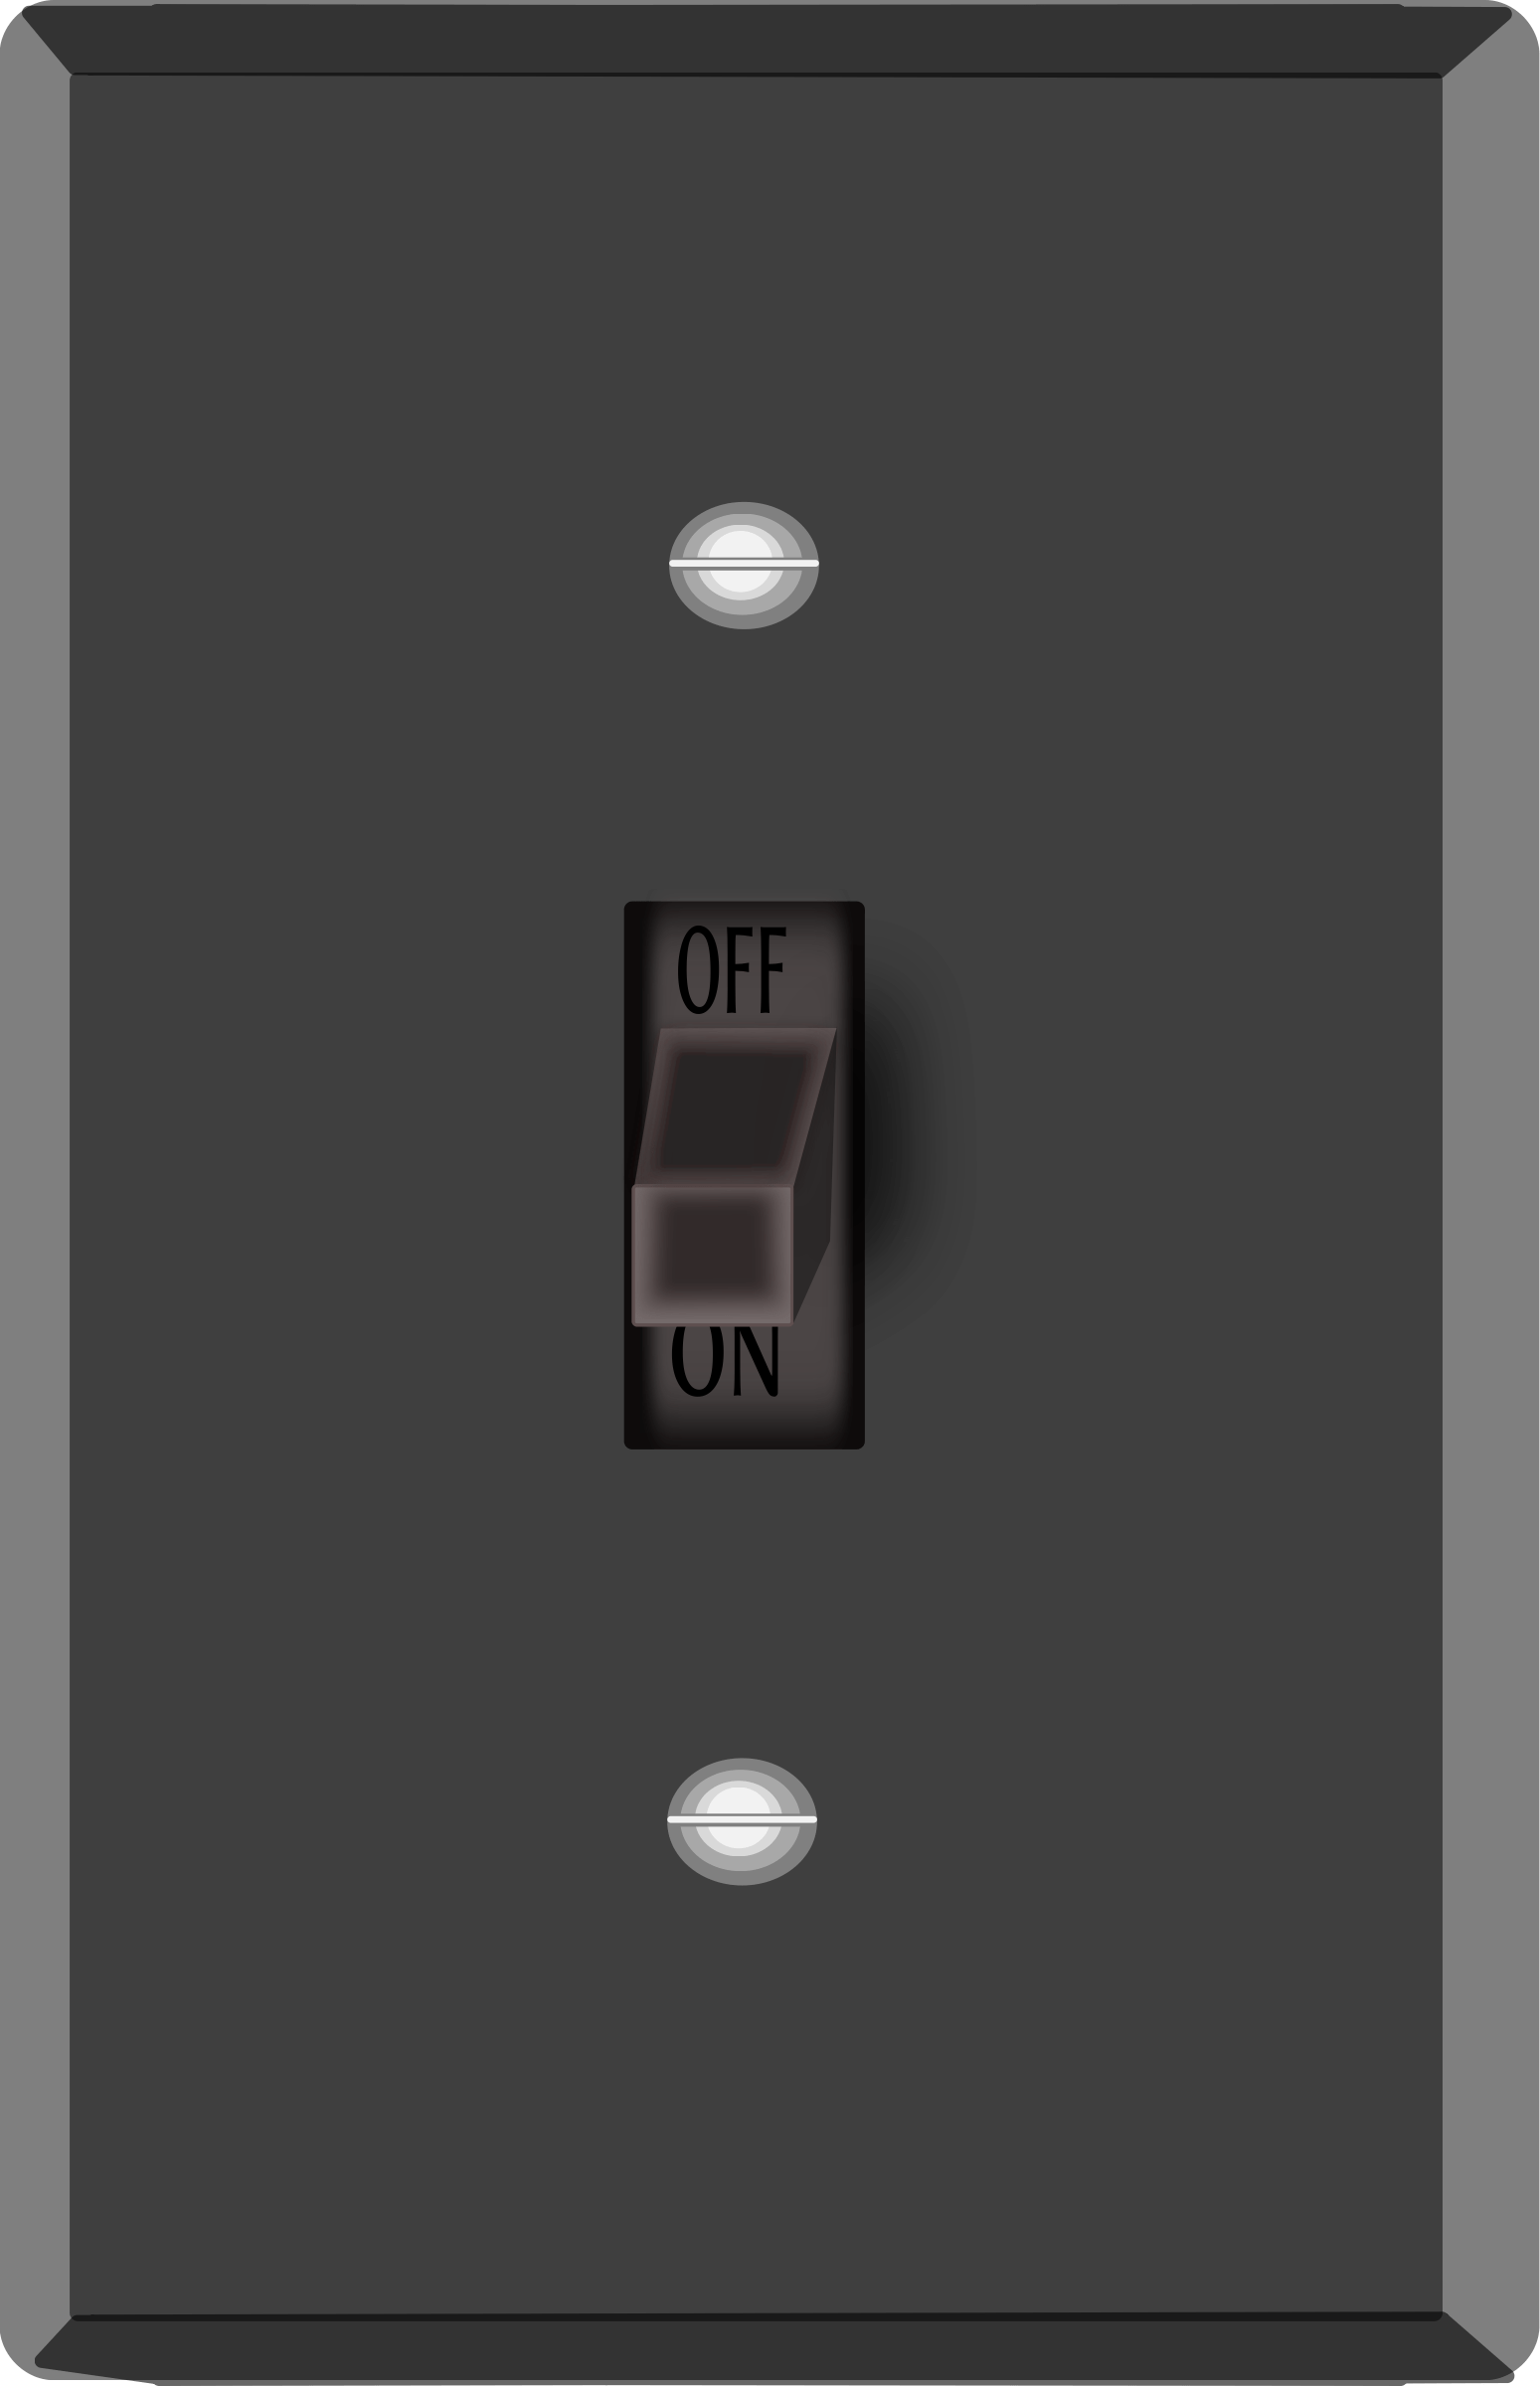 Light Switch Off Clipart Clipart Light Switch